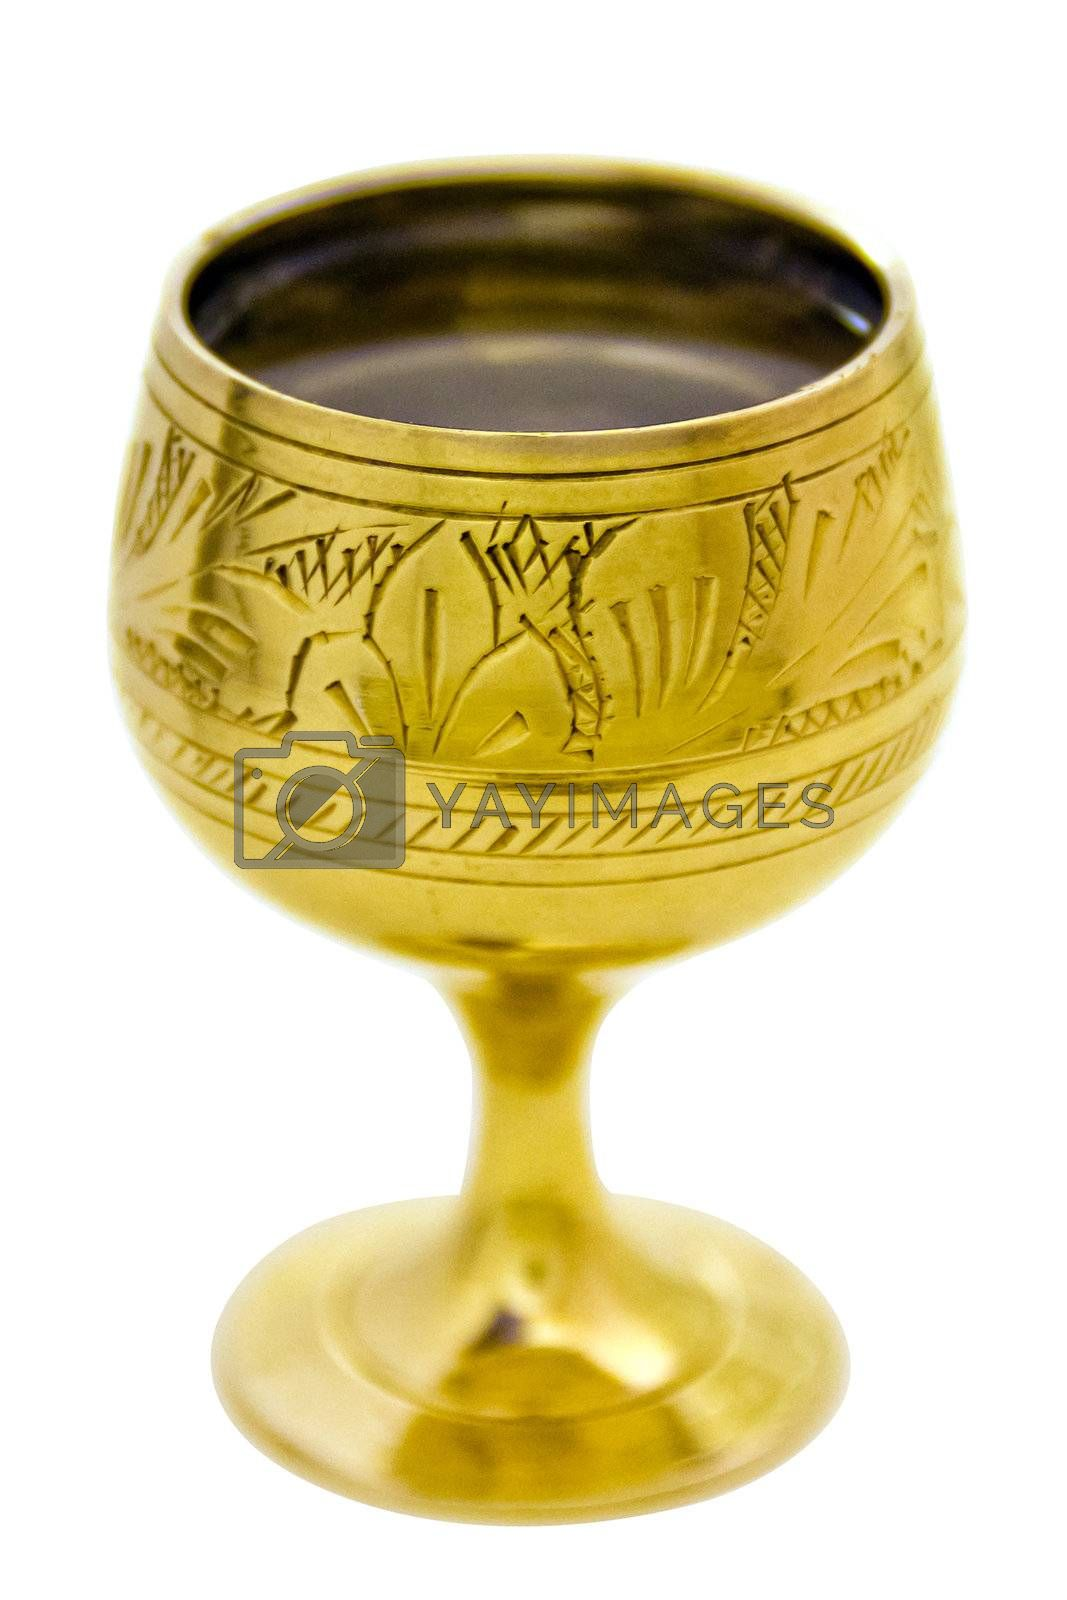 the dishy wine-glass with alcohol